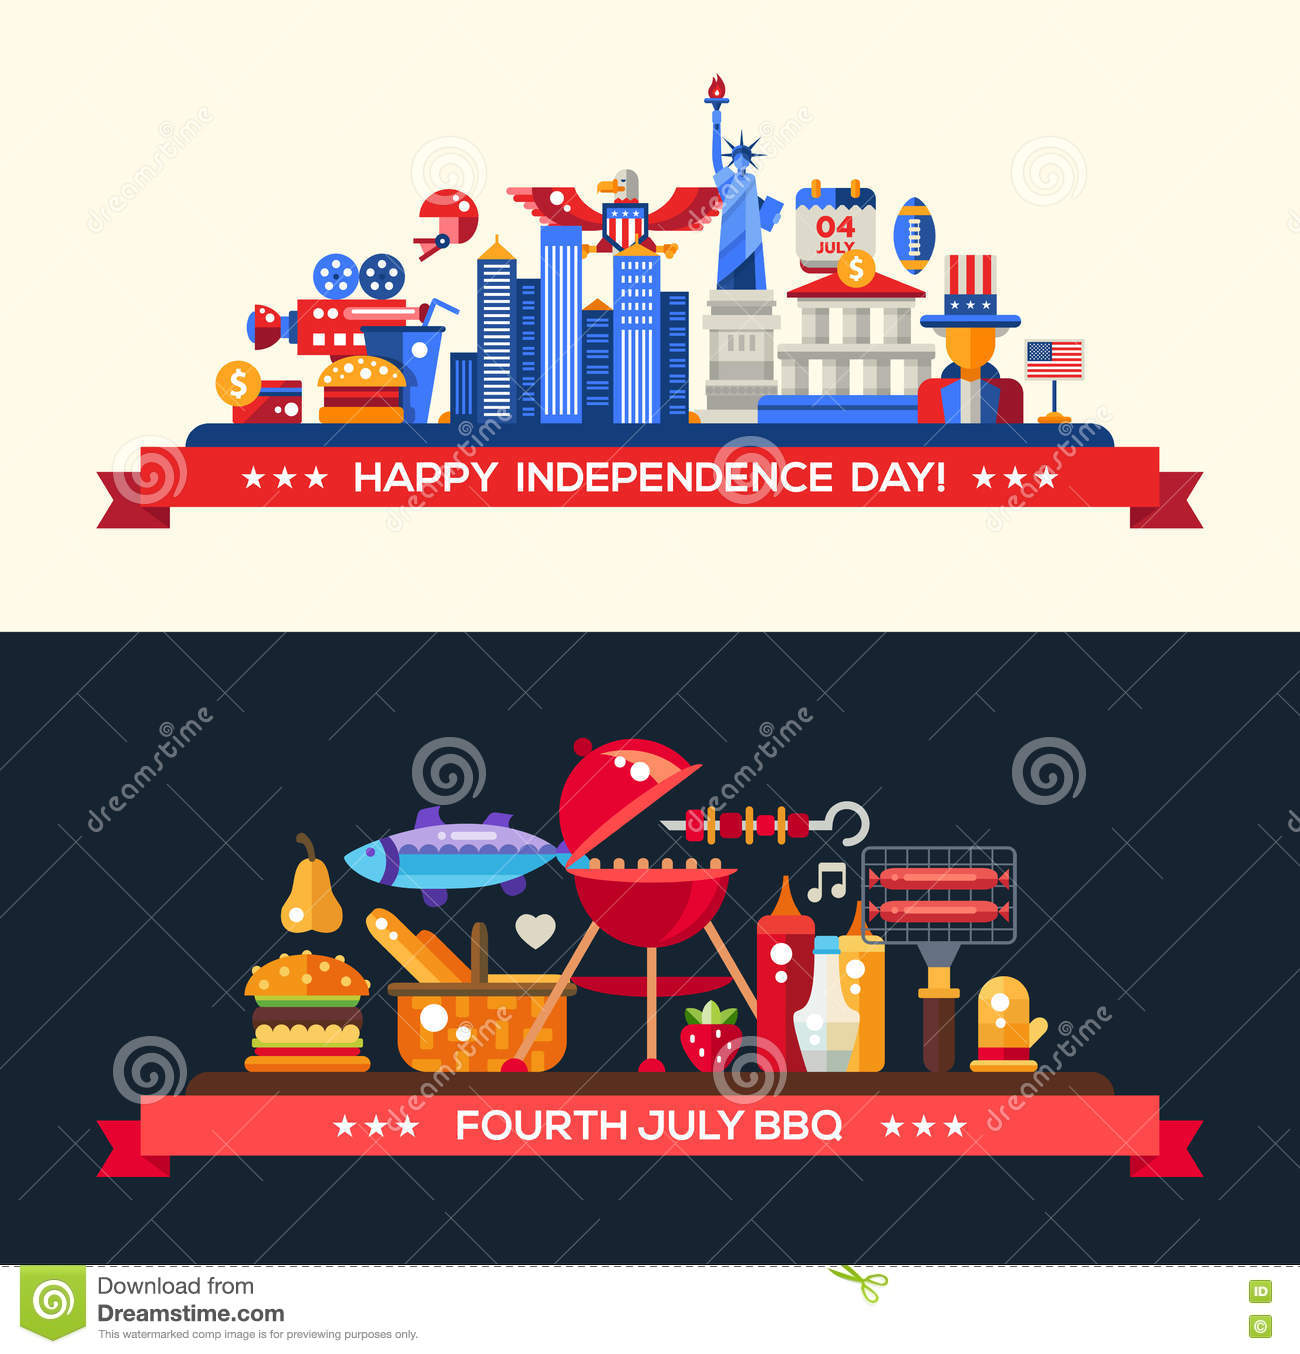 Usa Independence Day And Bbq Banners Set Stock Vector Illustration